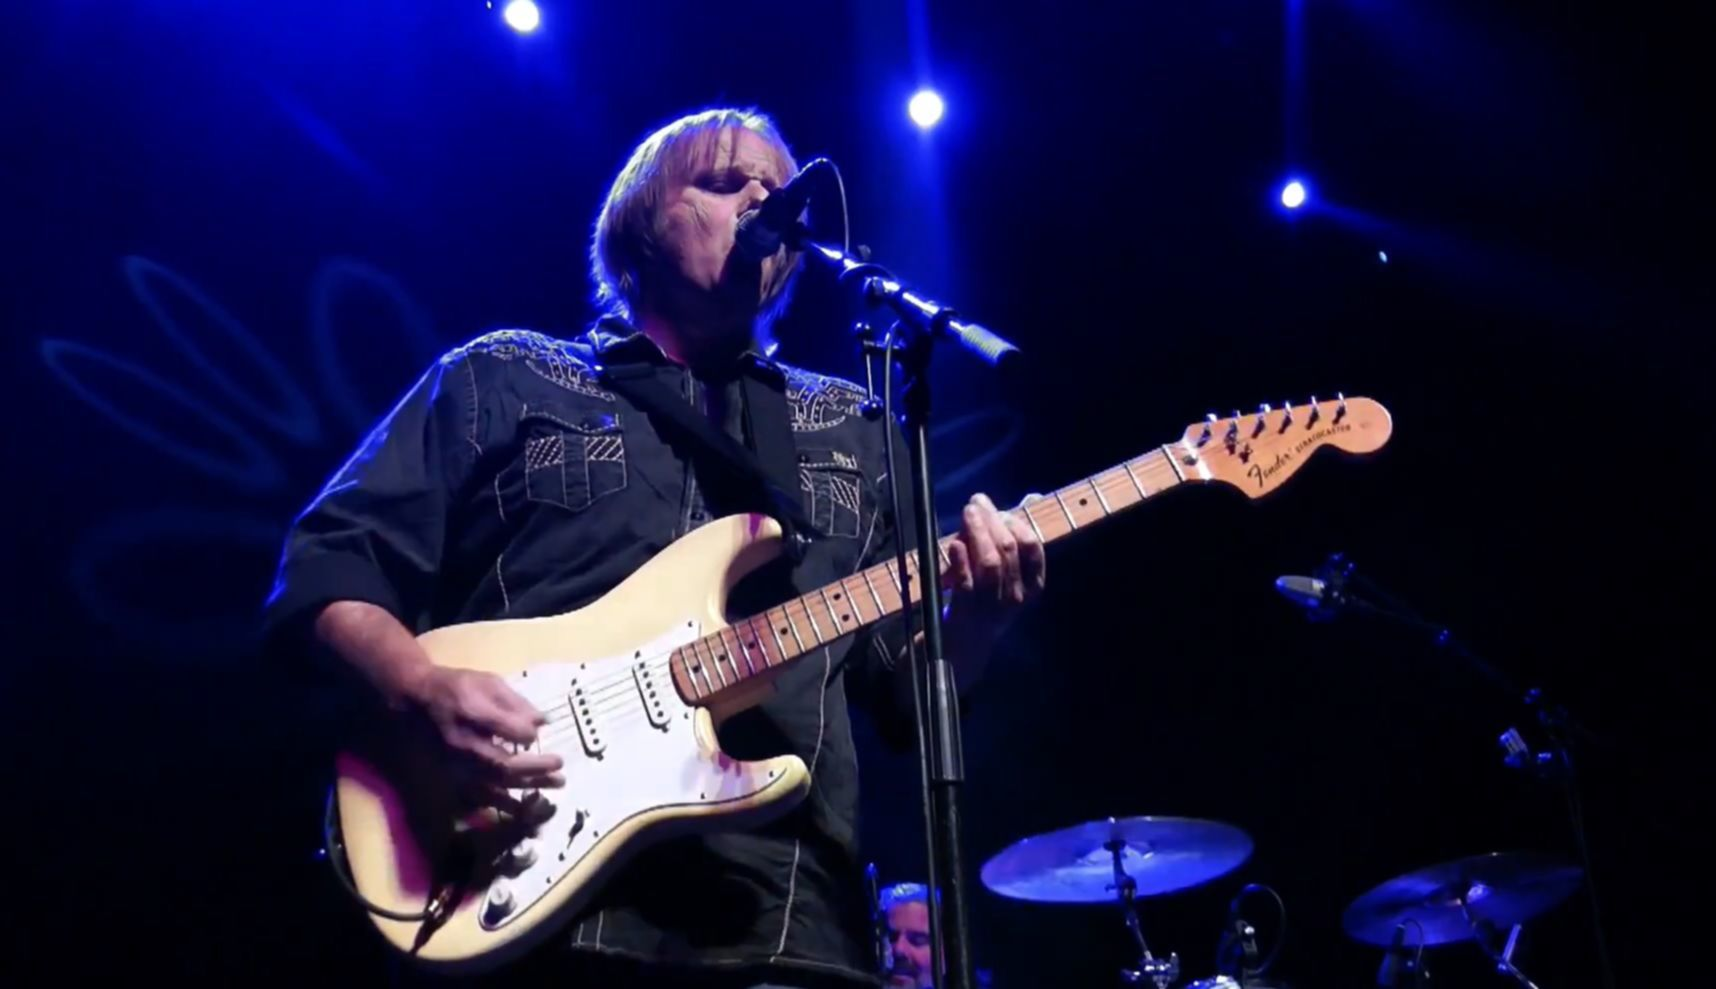 walter trout 2016 video still